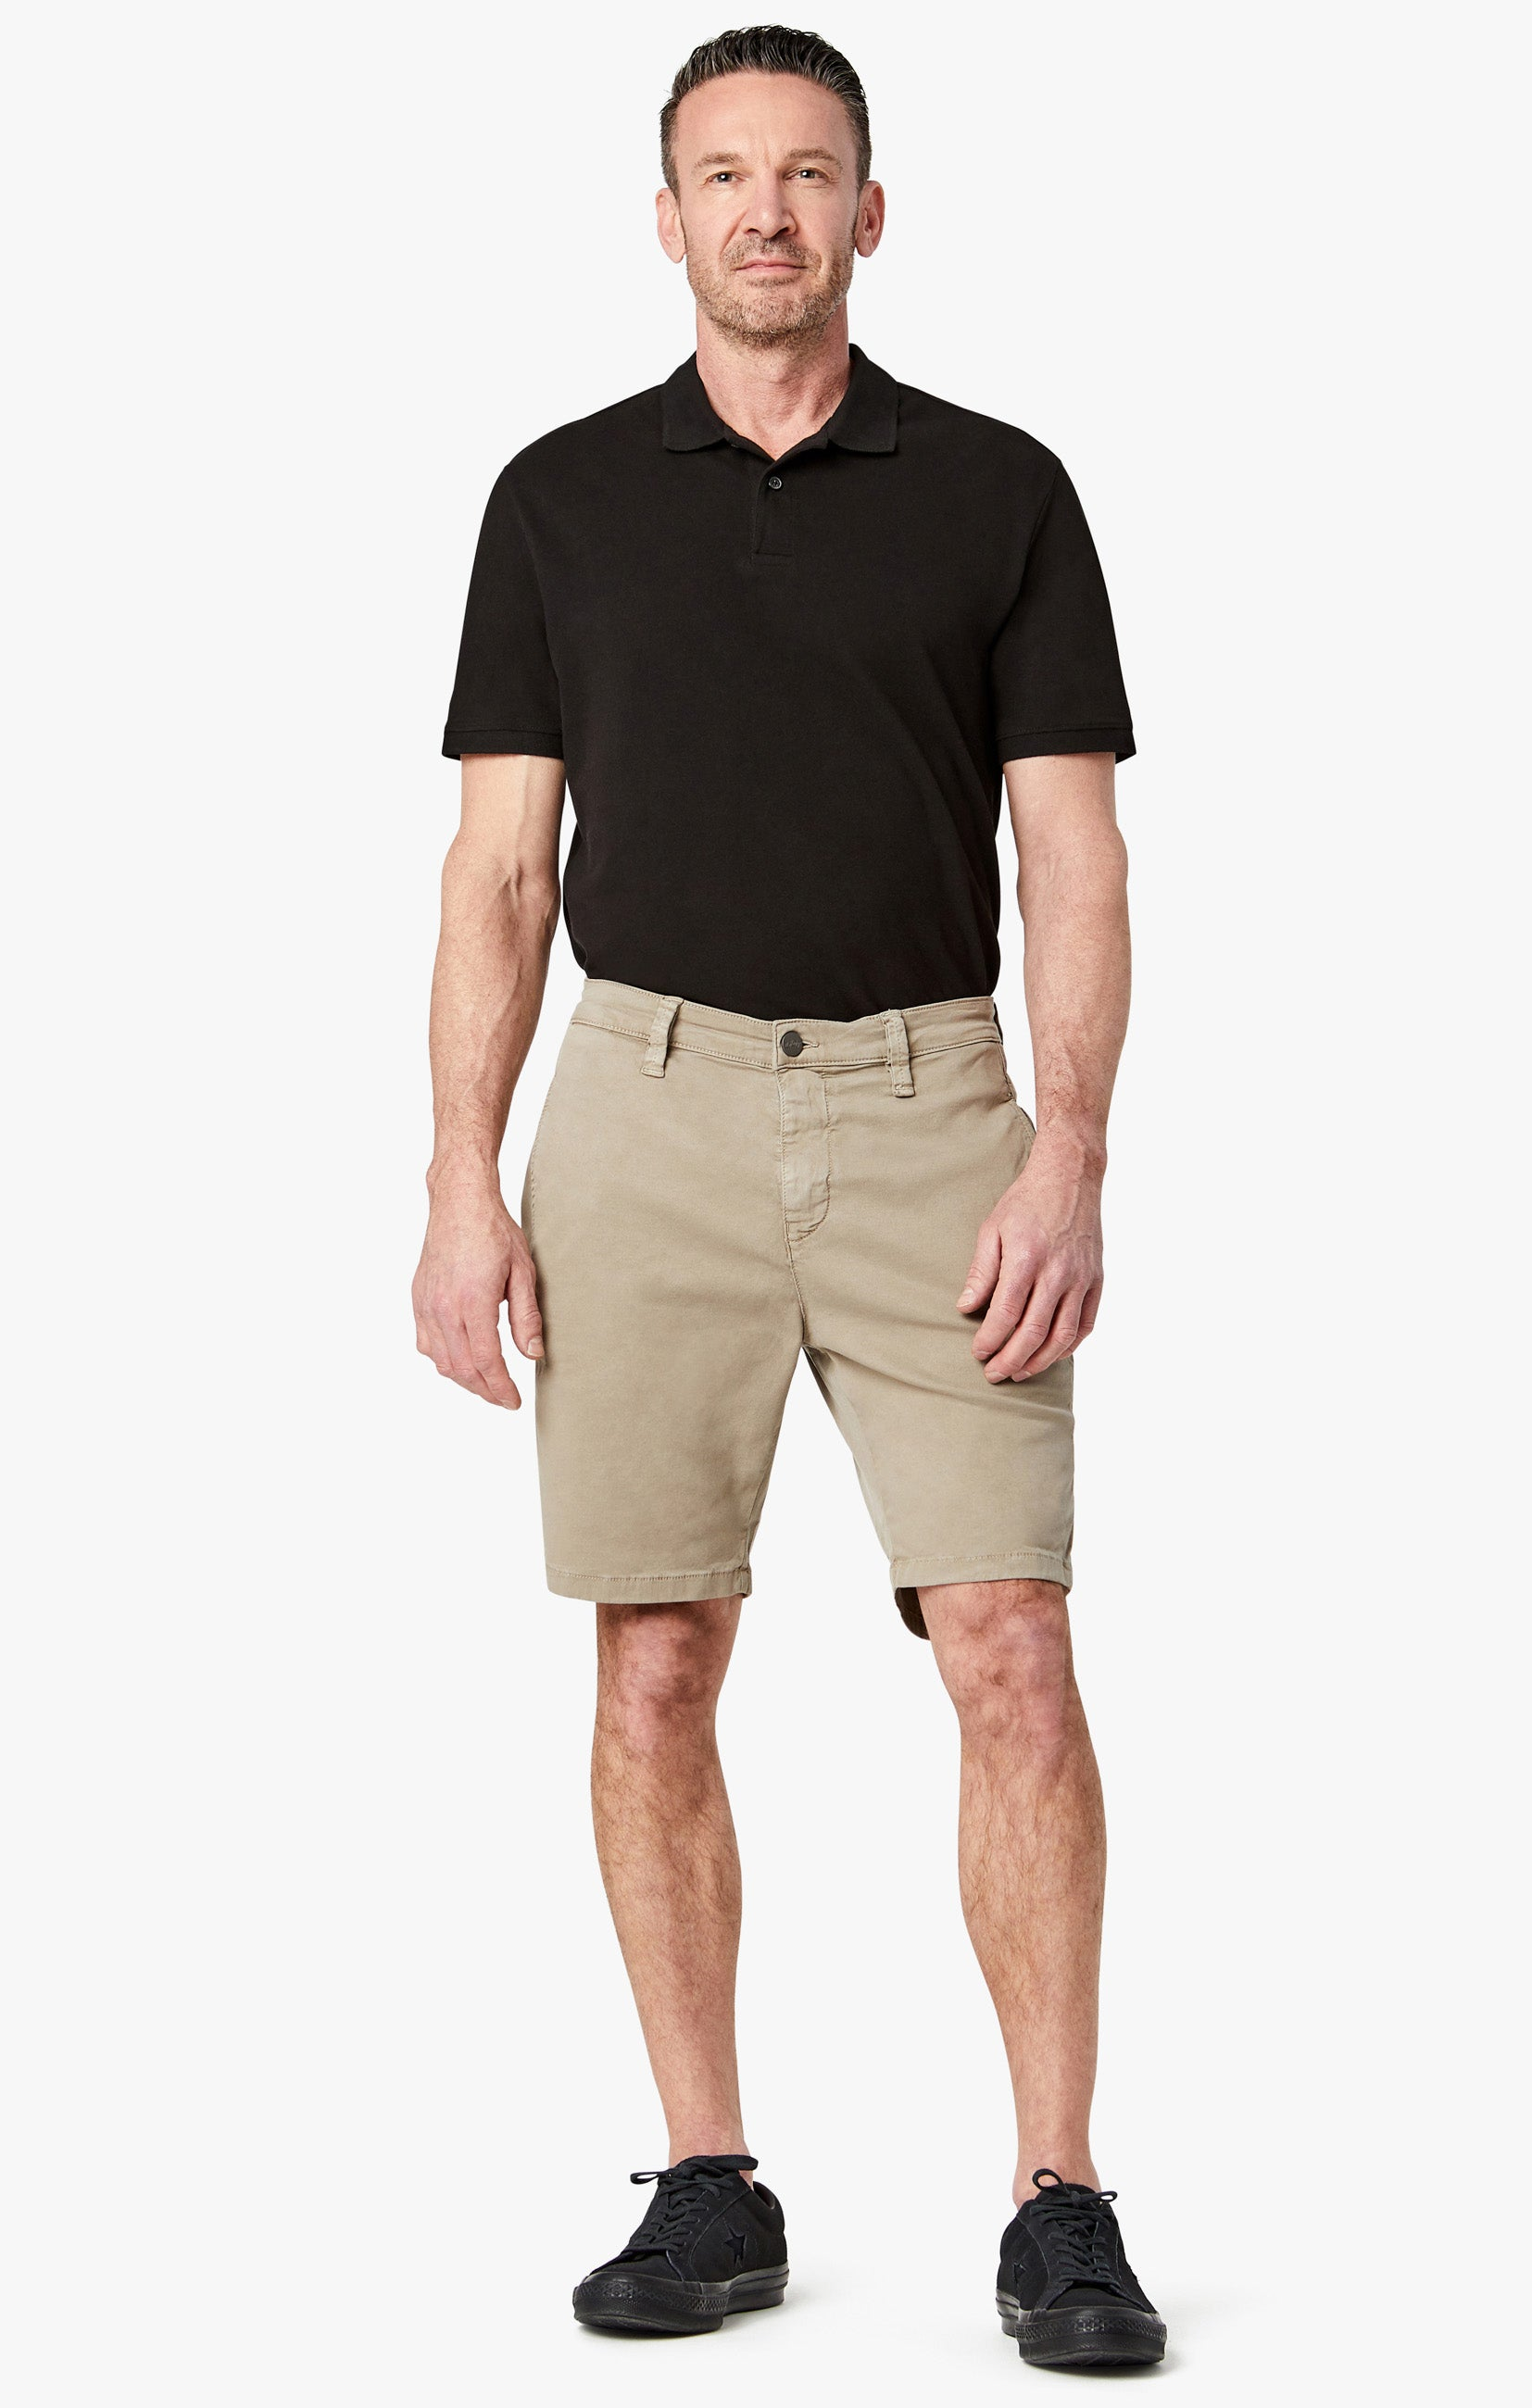 Nevada Shorts In Mushroom Soft Touch Image 1